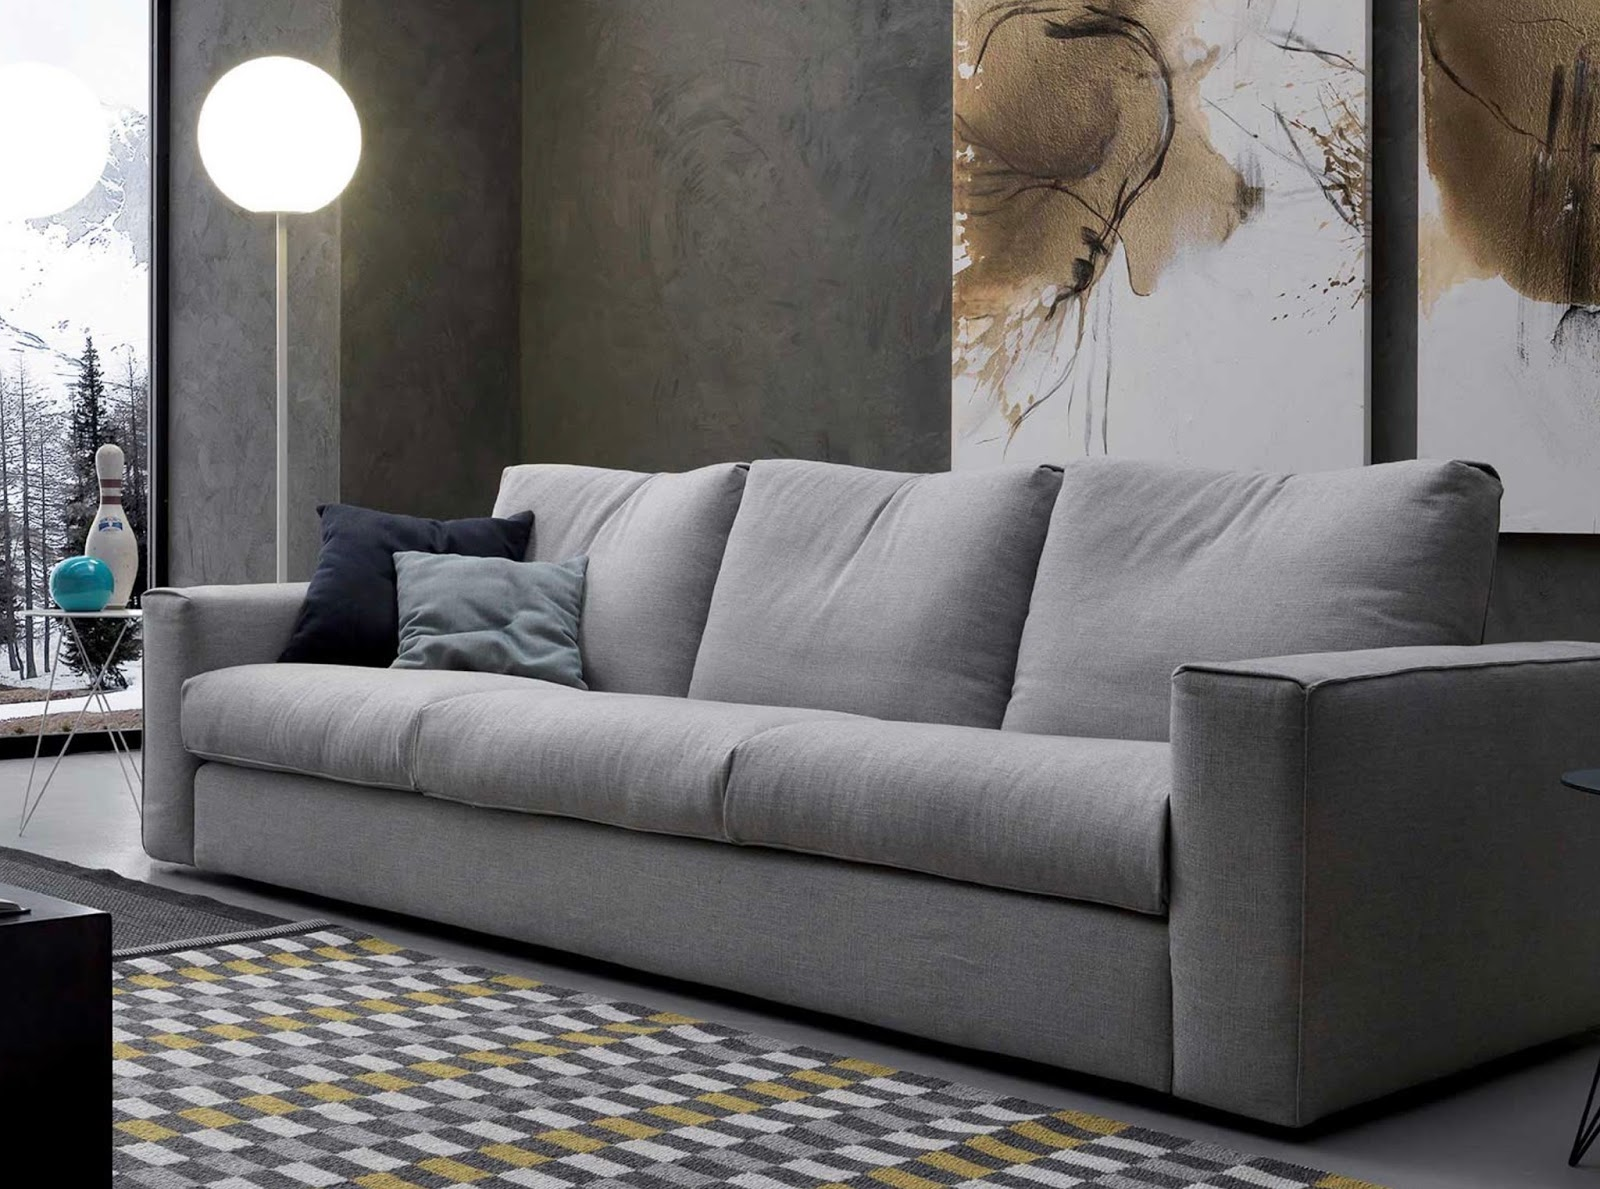 Designer Couch Momentoitalia Italian Furniture Blog